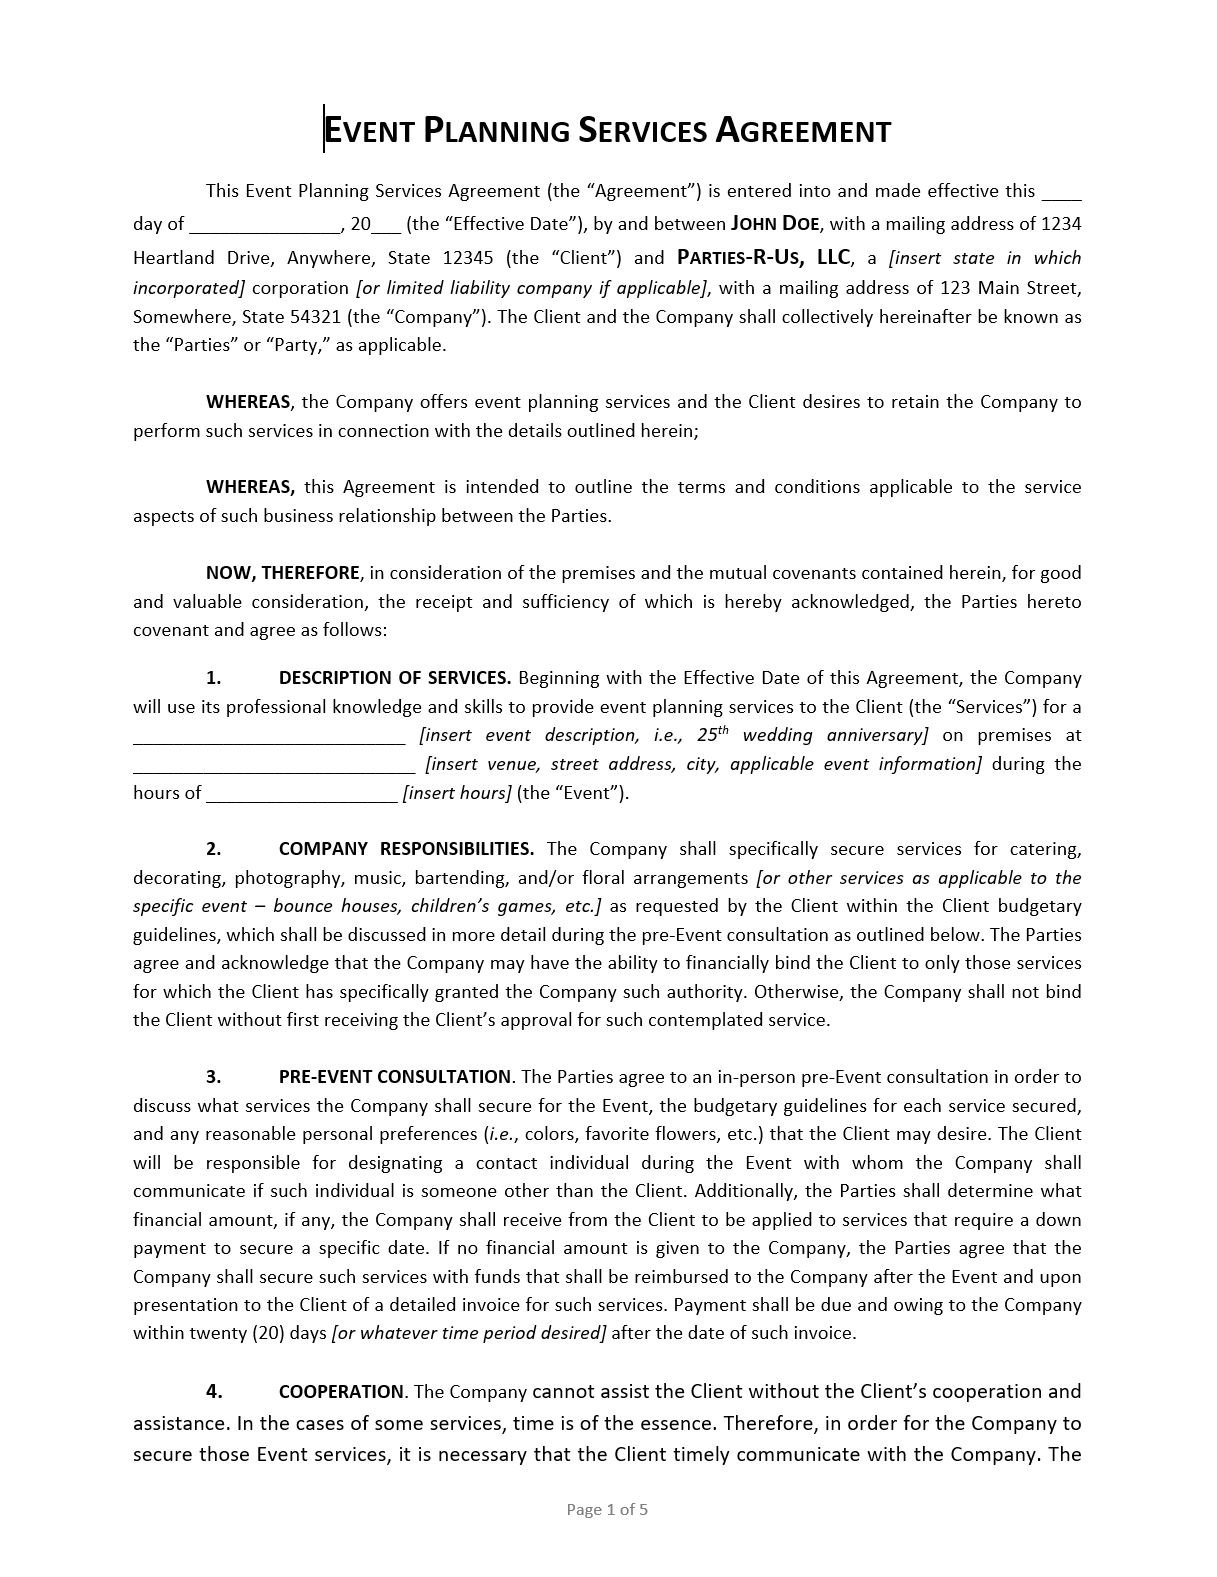 Wedding Vendor Contract Template from cdn.approveme.com